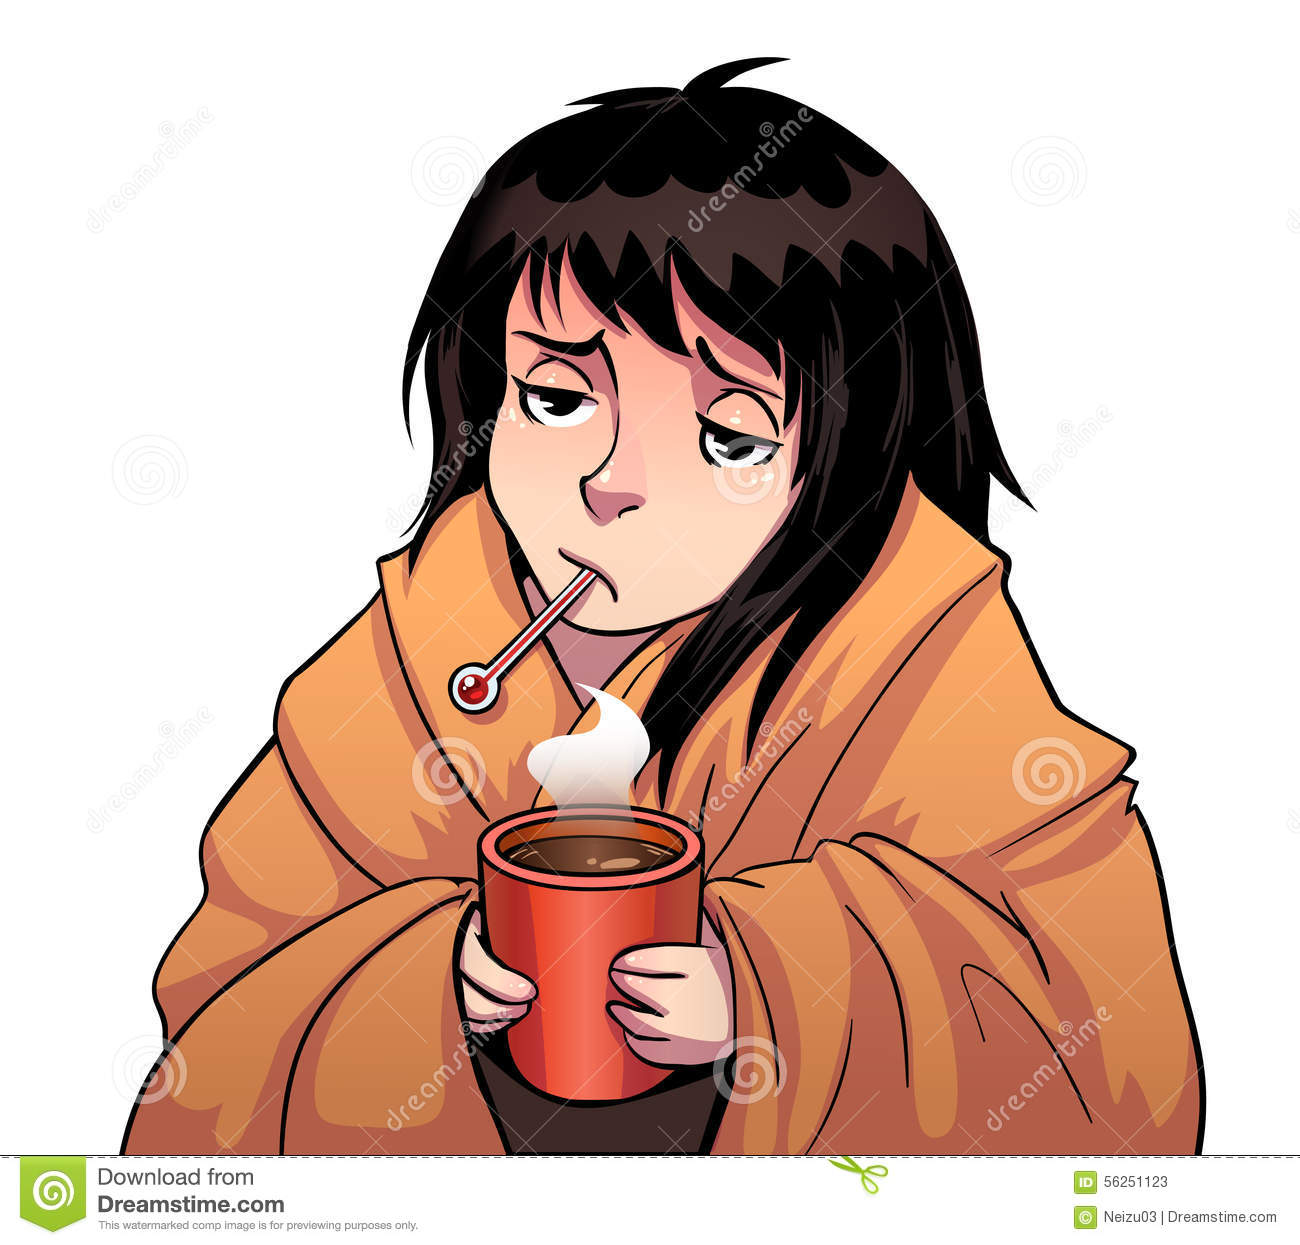 Sick Girl With Thermometer And Hot Cup Stock Illustration - Image ...: http://www.dreamstime.com/stock-illustration-sick-girl-thermometer-hot-cup-vector-cartoon-white-image56251123